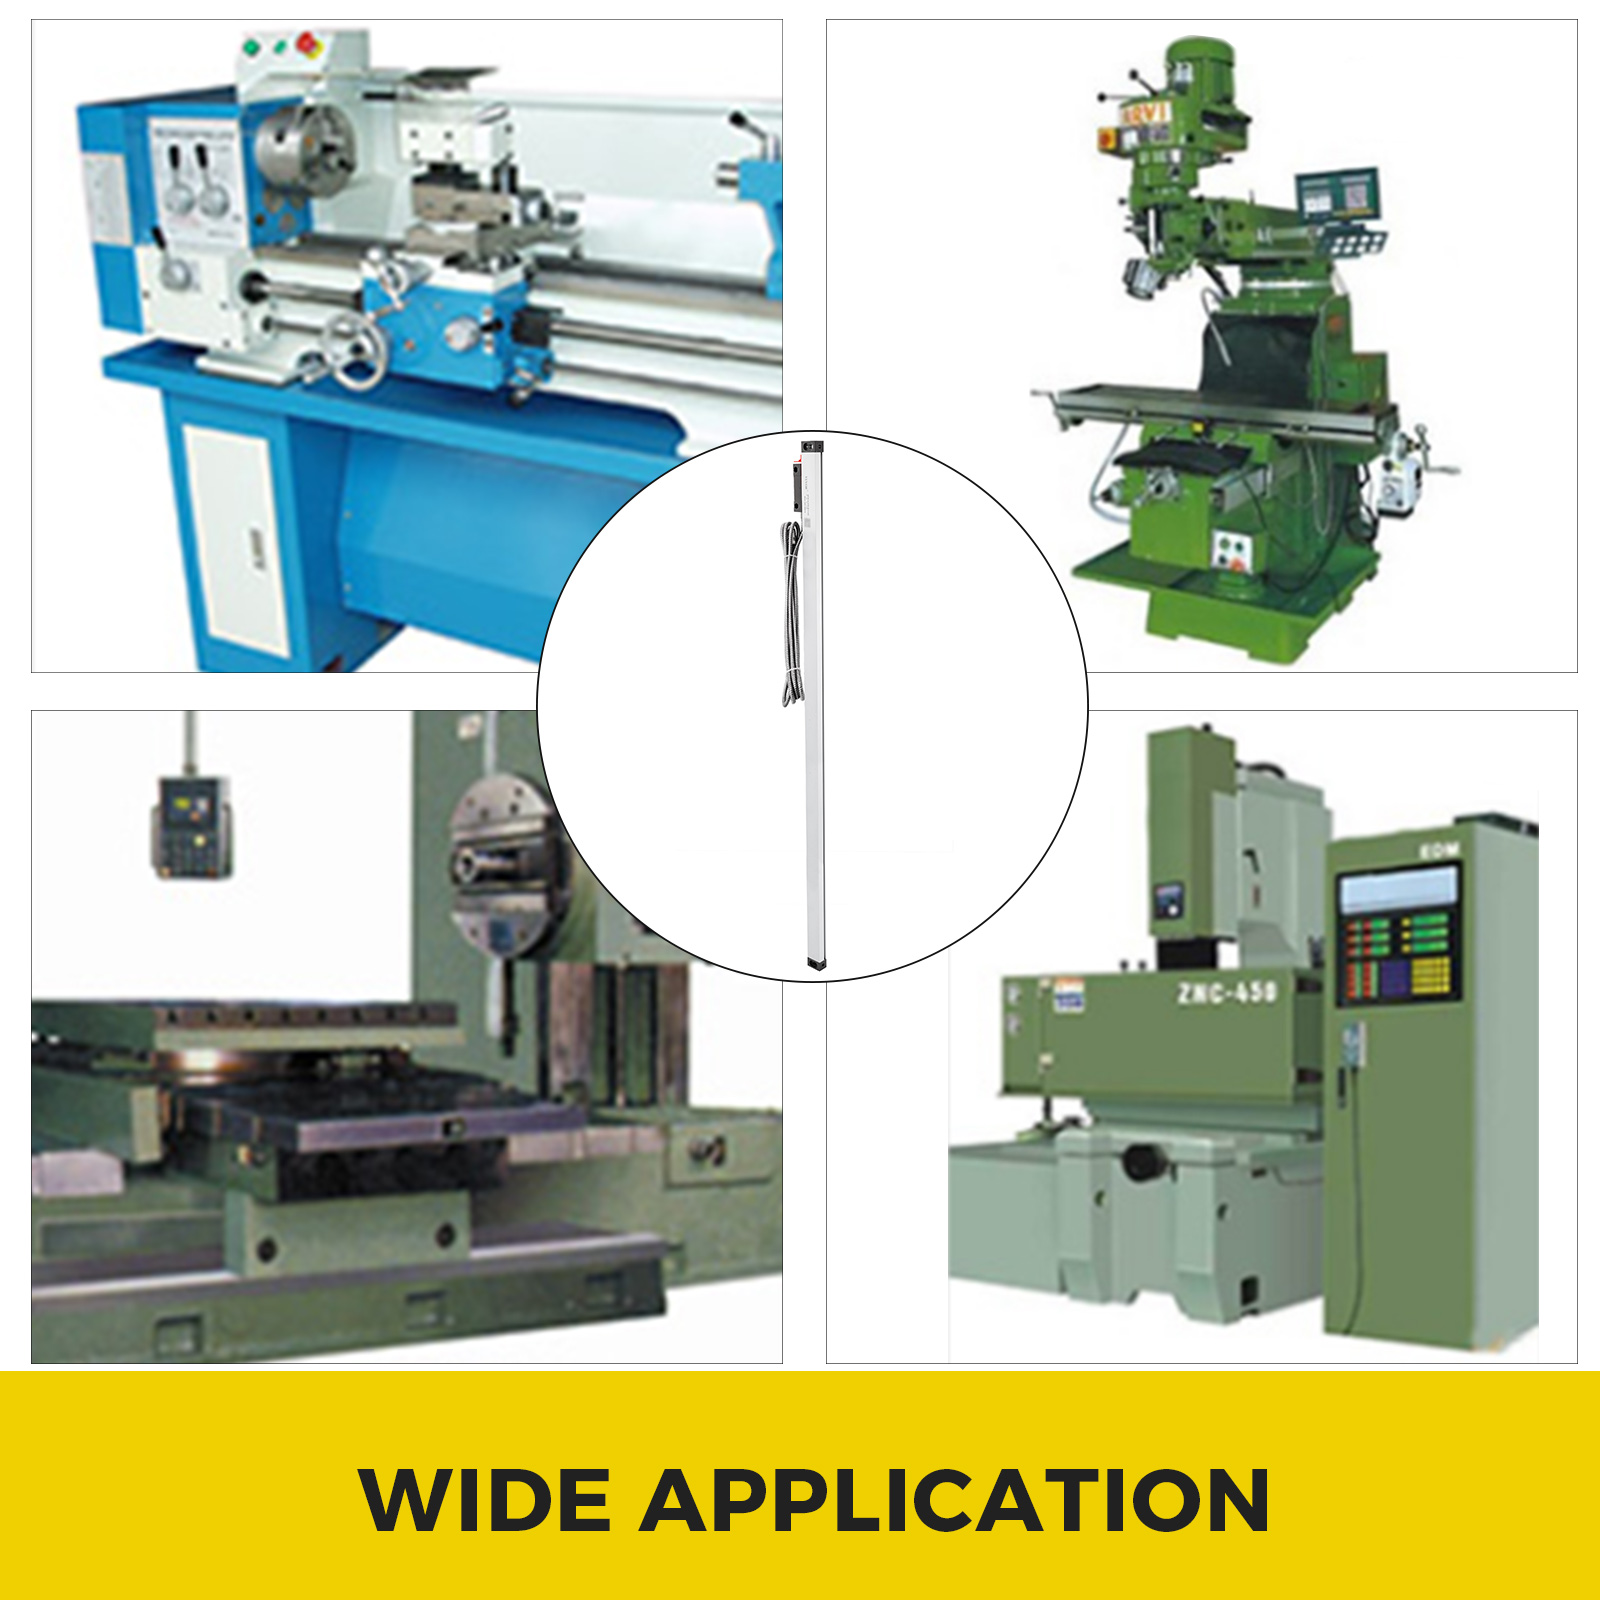 2-3-Axis-Digital-Readout-Linear-Scale-Double-Seal-5-Bearing-System-Grinding thumbnail 223